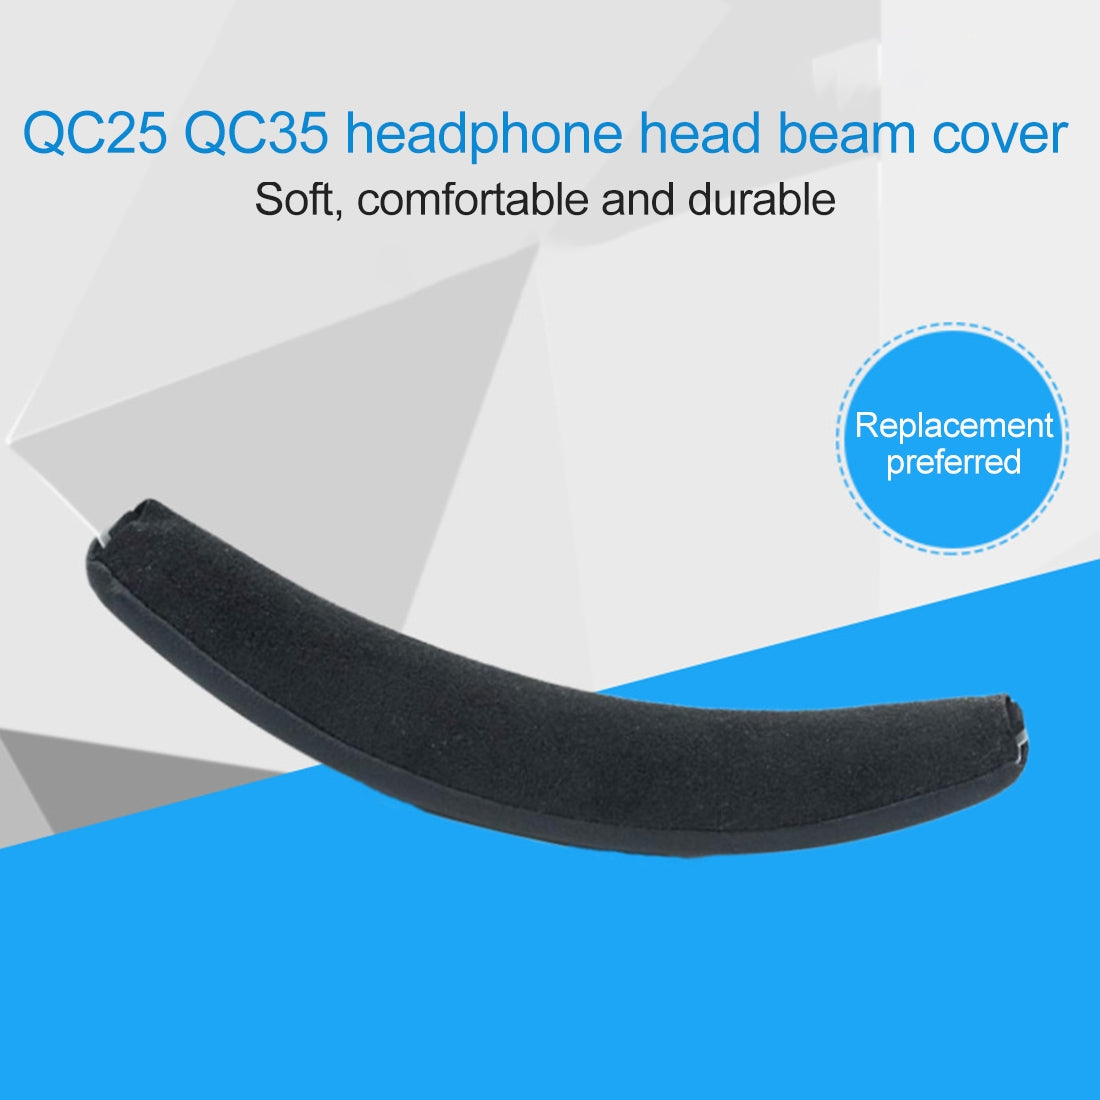 Head Beam Sponge Protective Cover for Bose QC25 Headphone